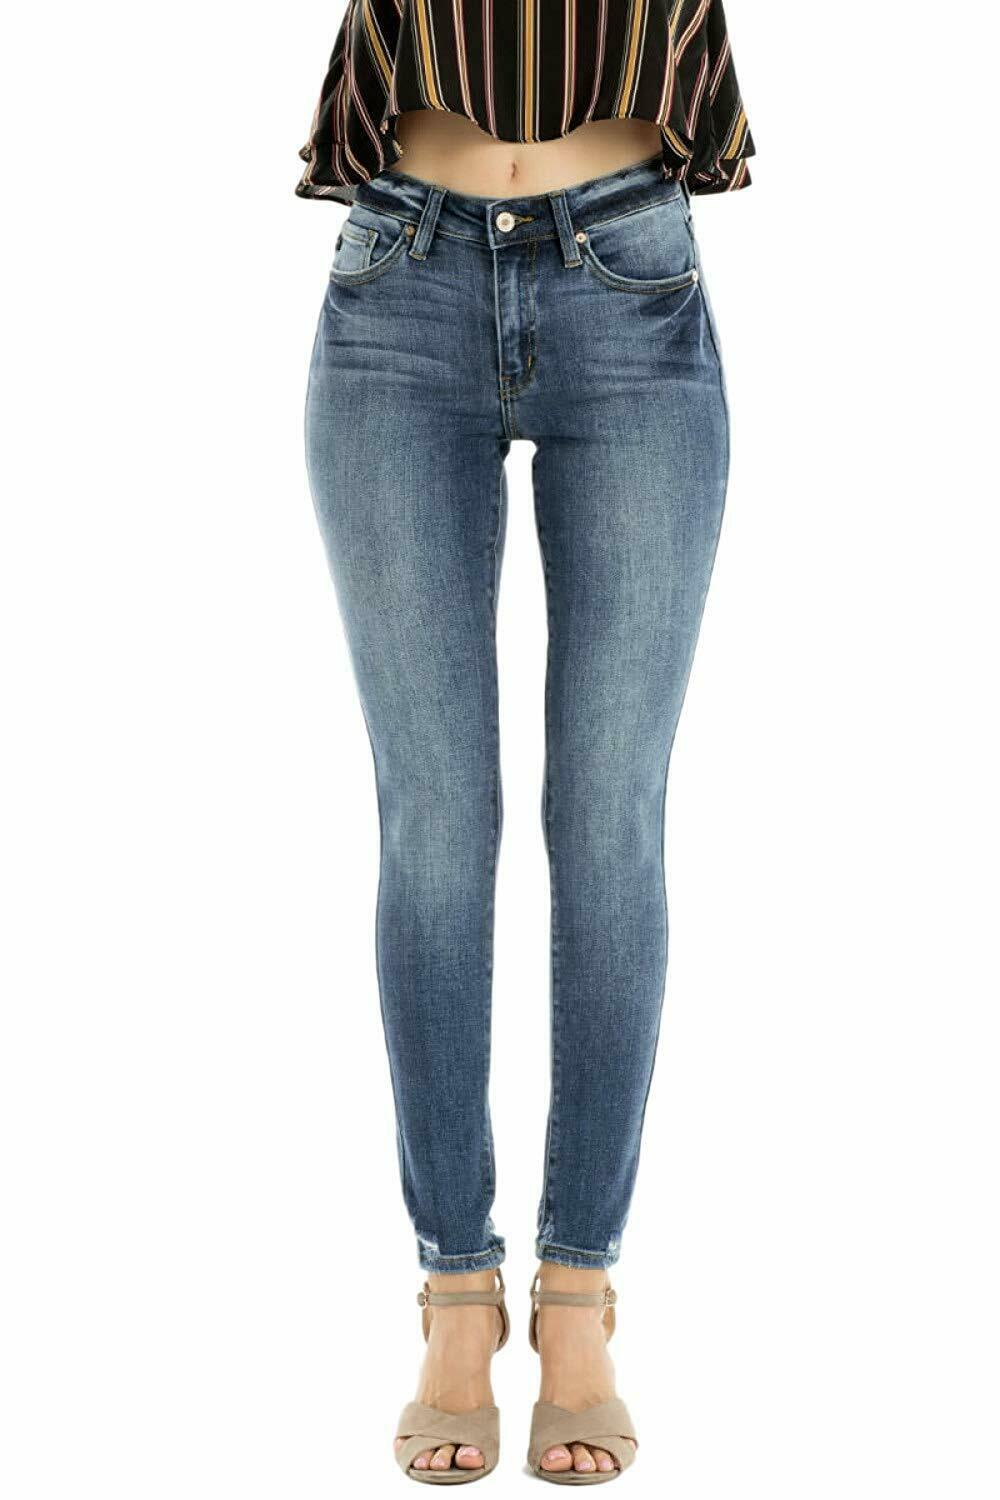 KanCan Jeans Leary High Rise Medium Dark Wash Curvy Fit Skinny Jeans KC9141D